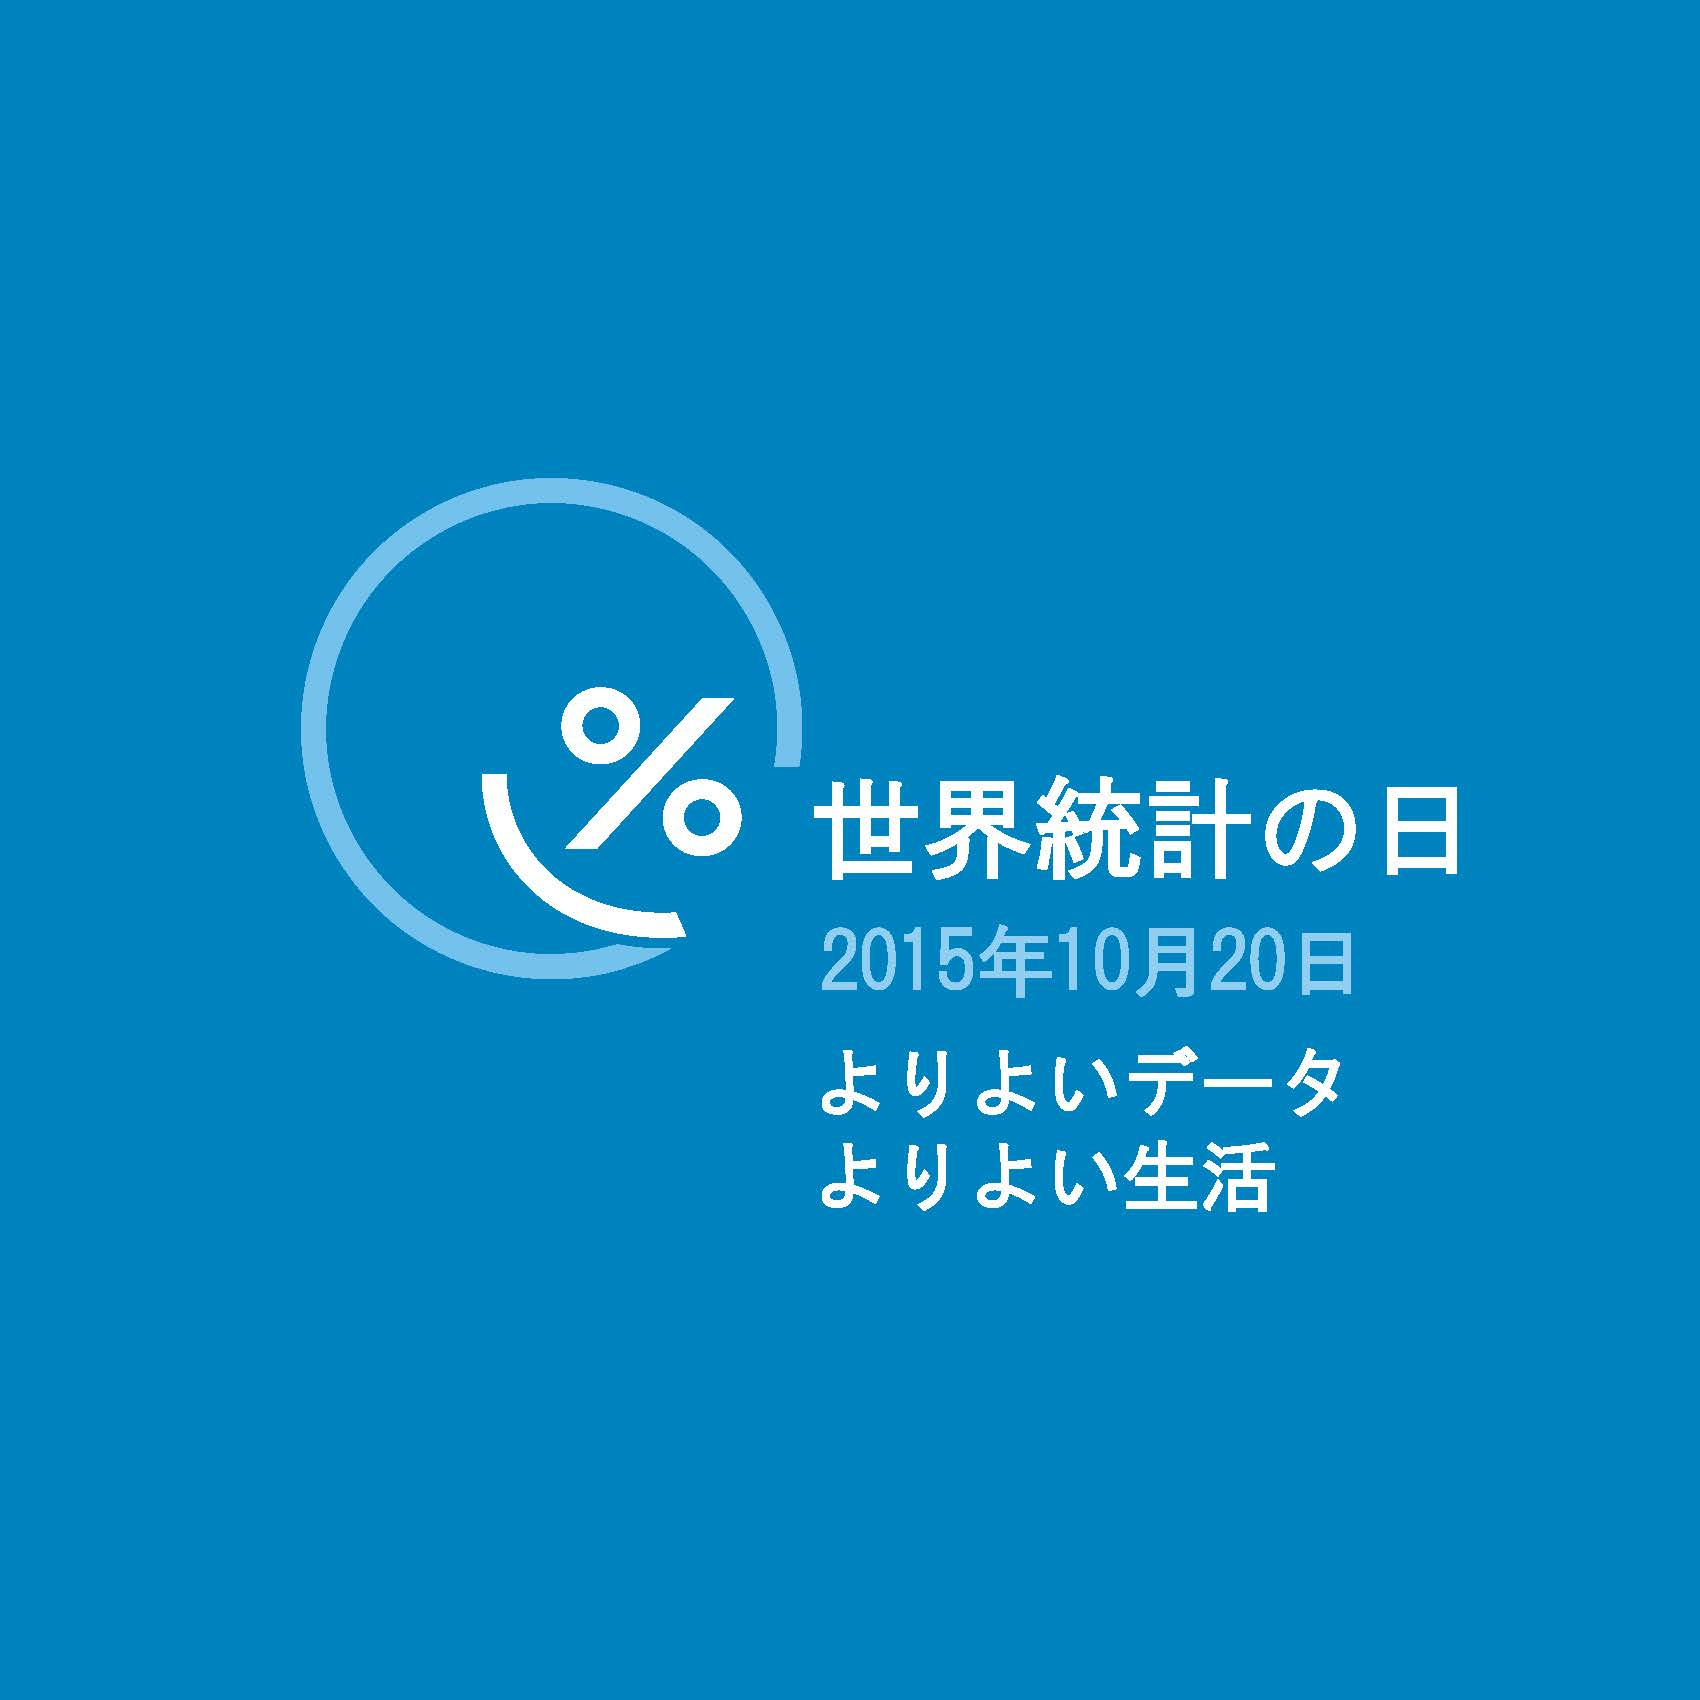 World Statistics Day Logo Now Available In Japanese